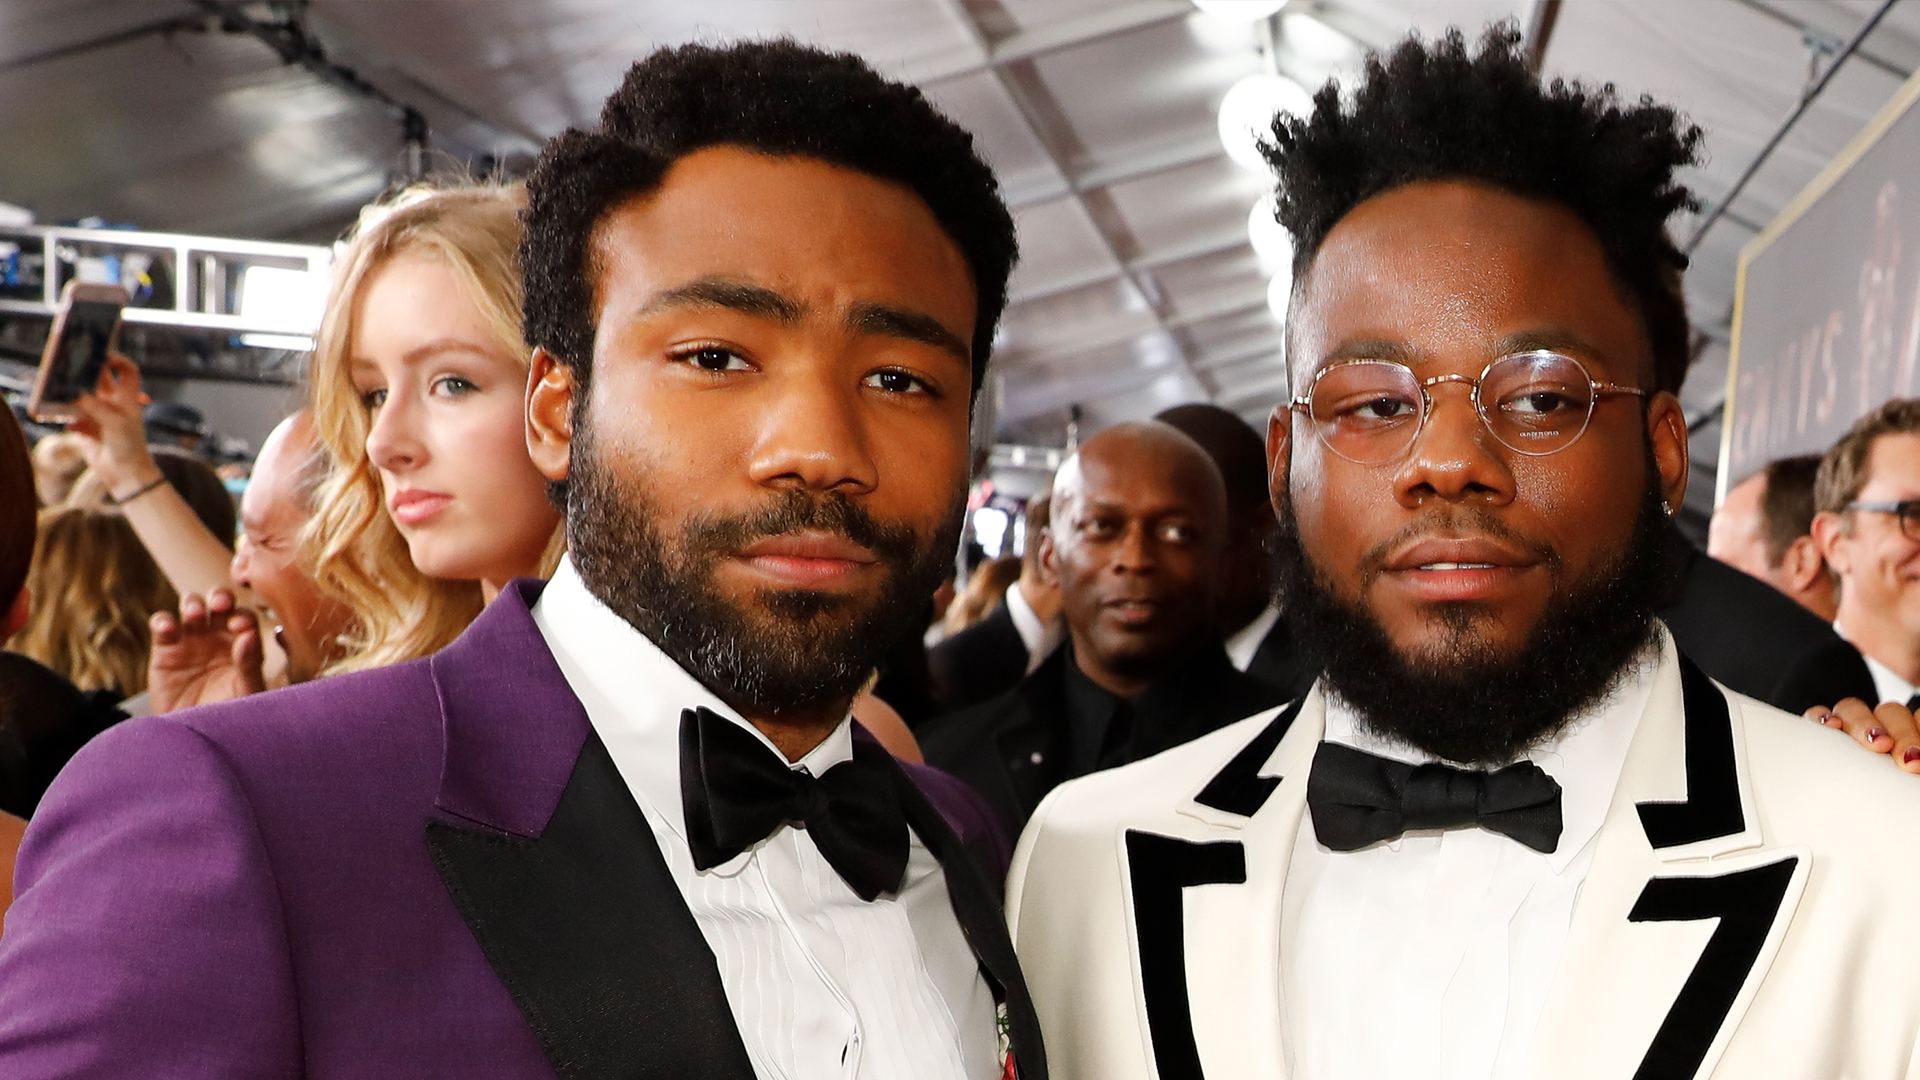 Donald Glover and Stephen Glover from Atlanta